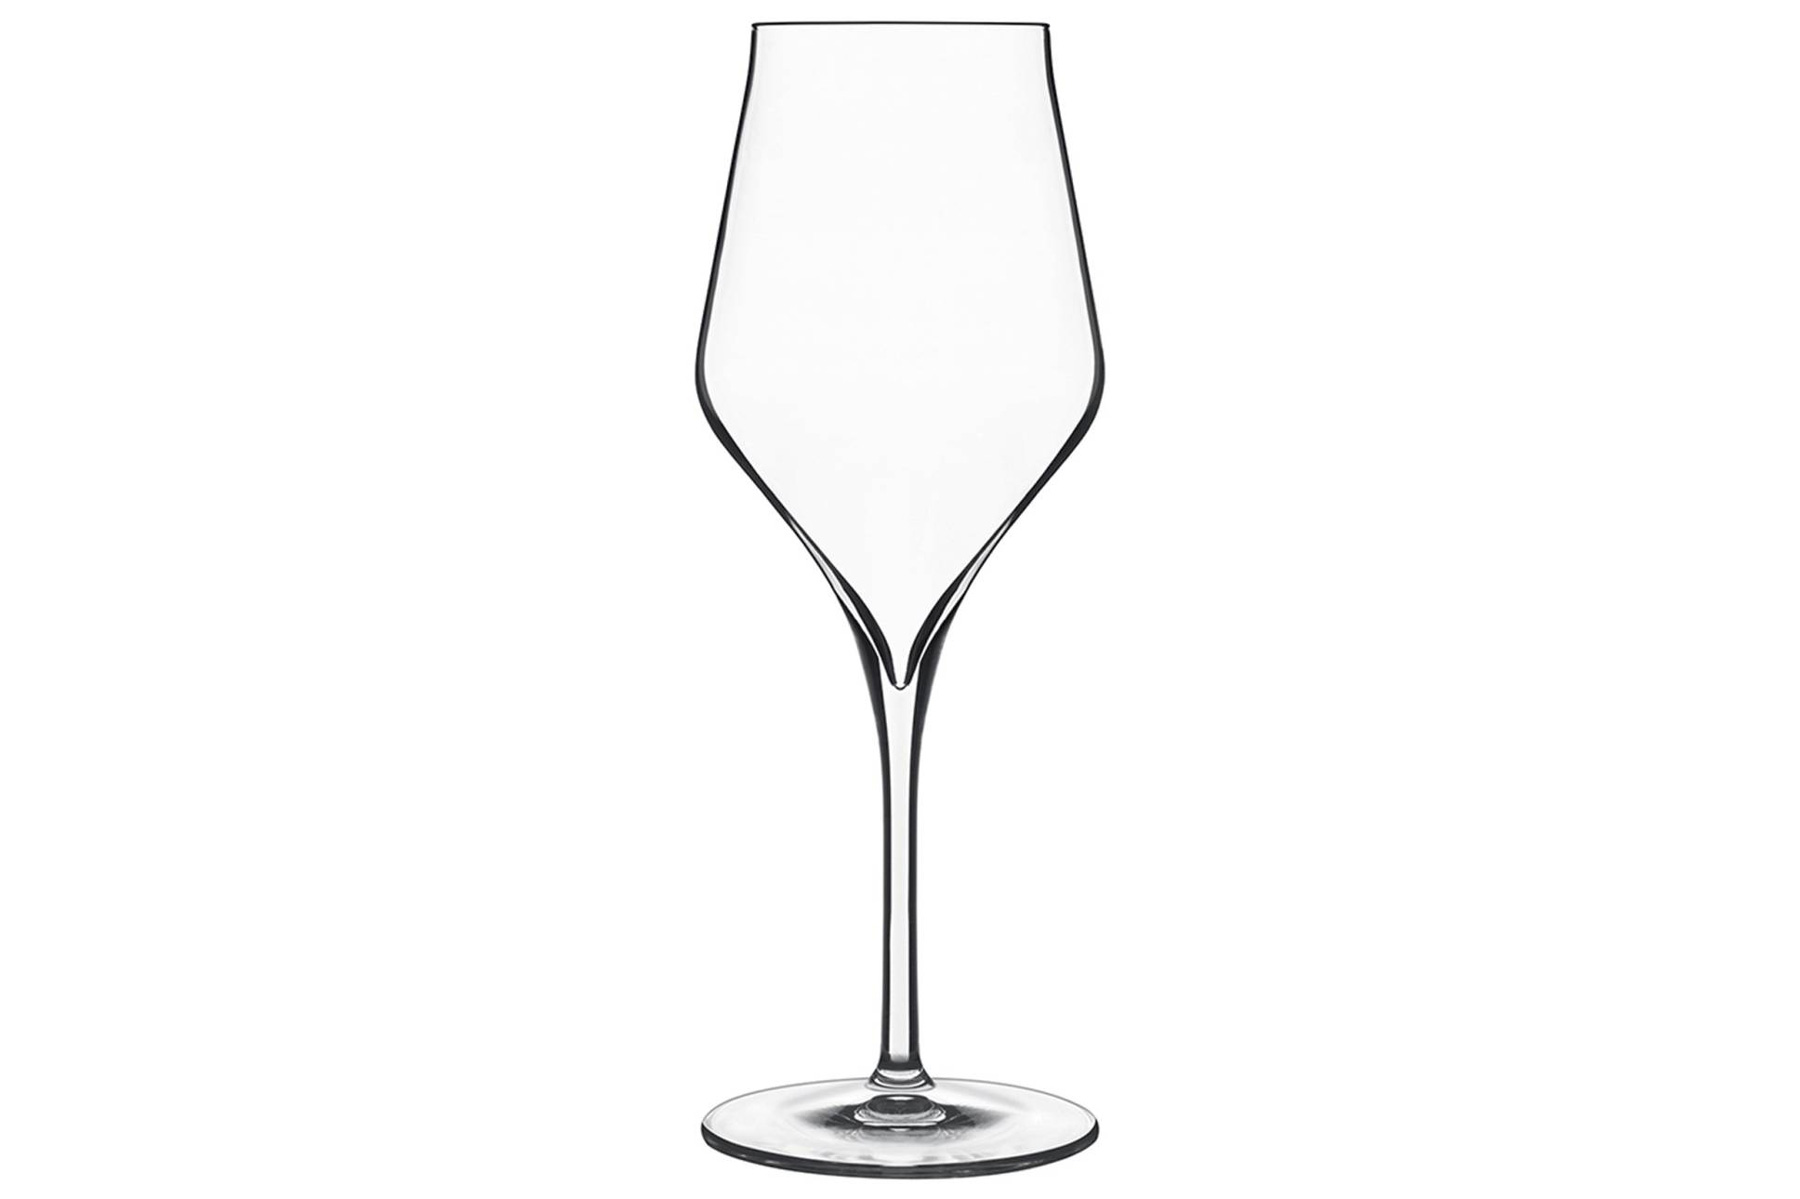 'Supremo' Chardonnay Glasses